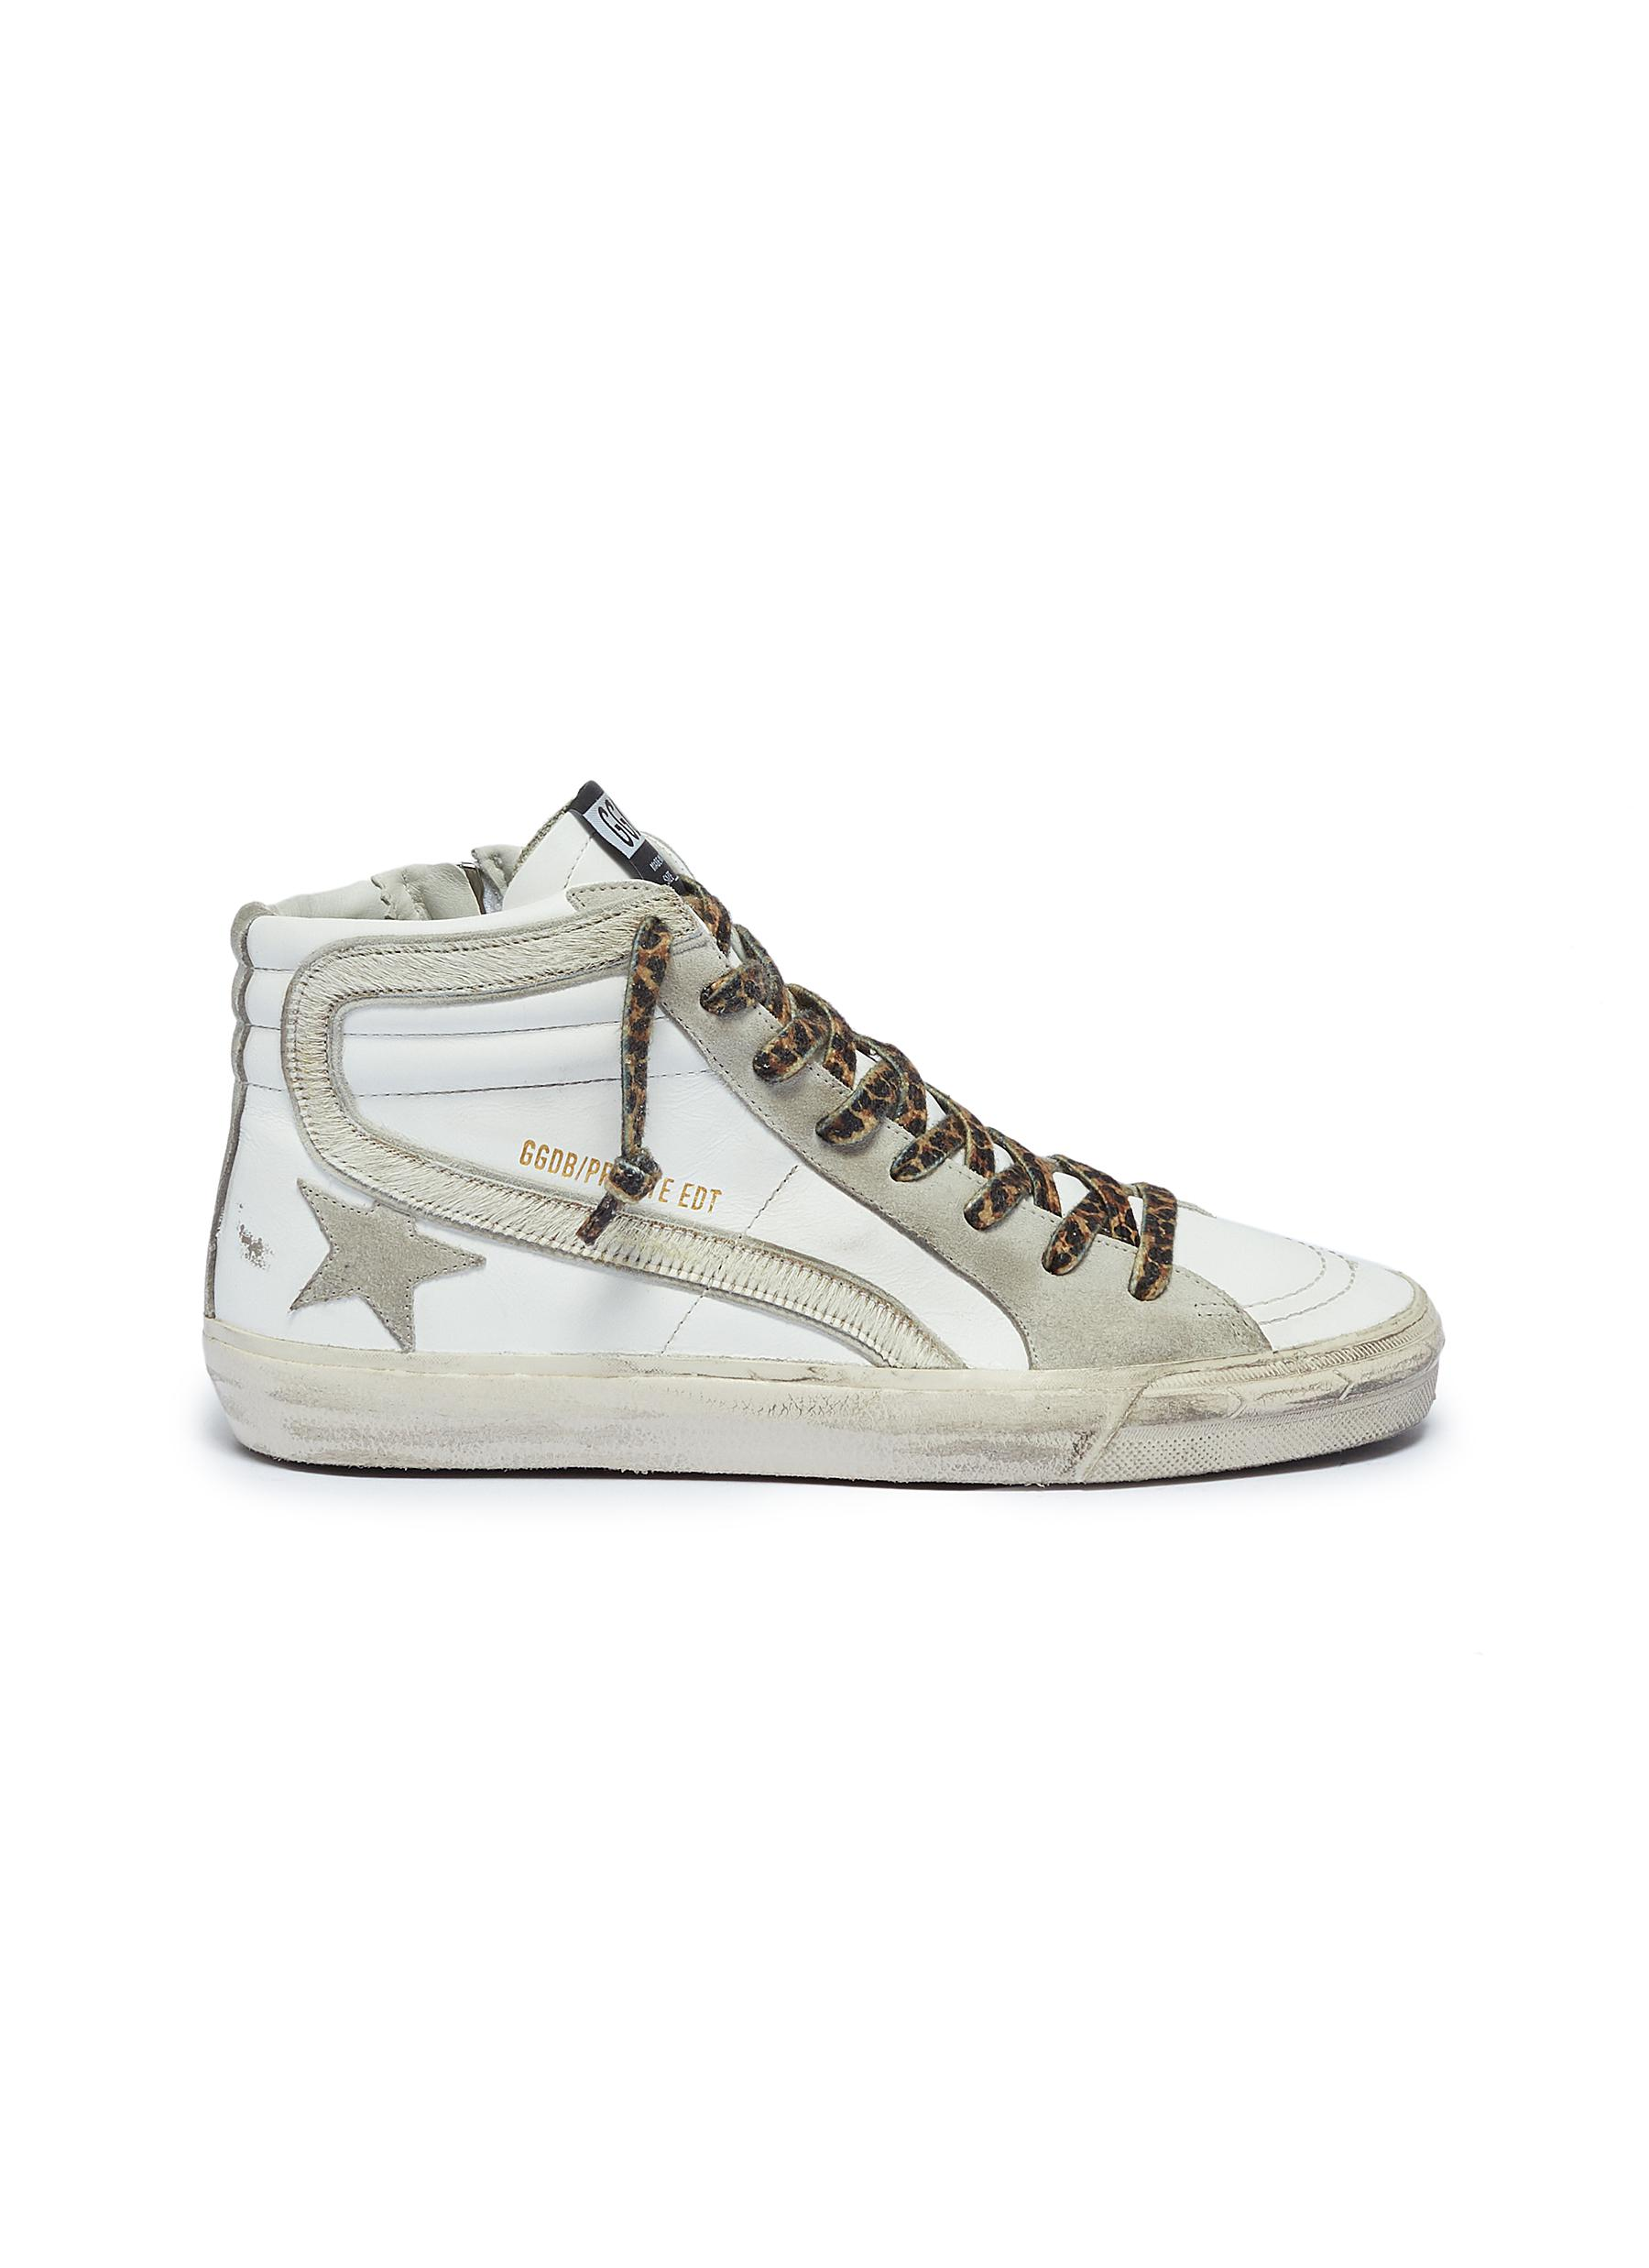 Leopard print lace-up hair trim mid top sneakers by Golden Goose